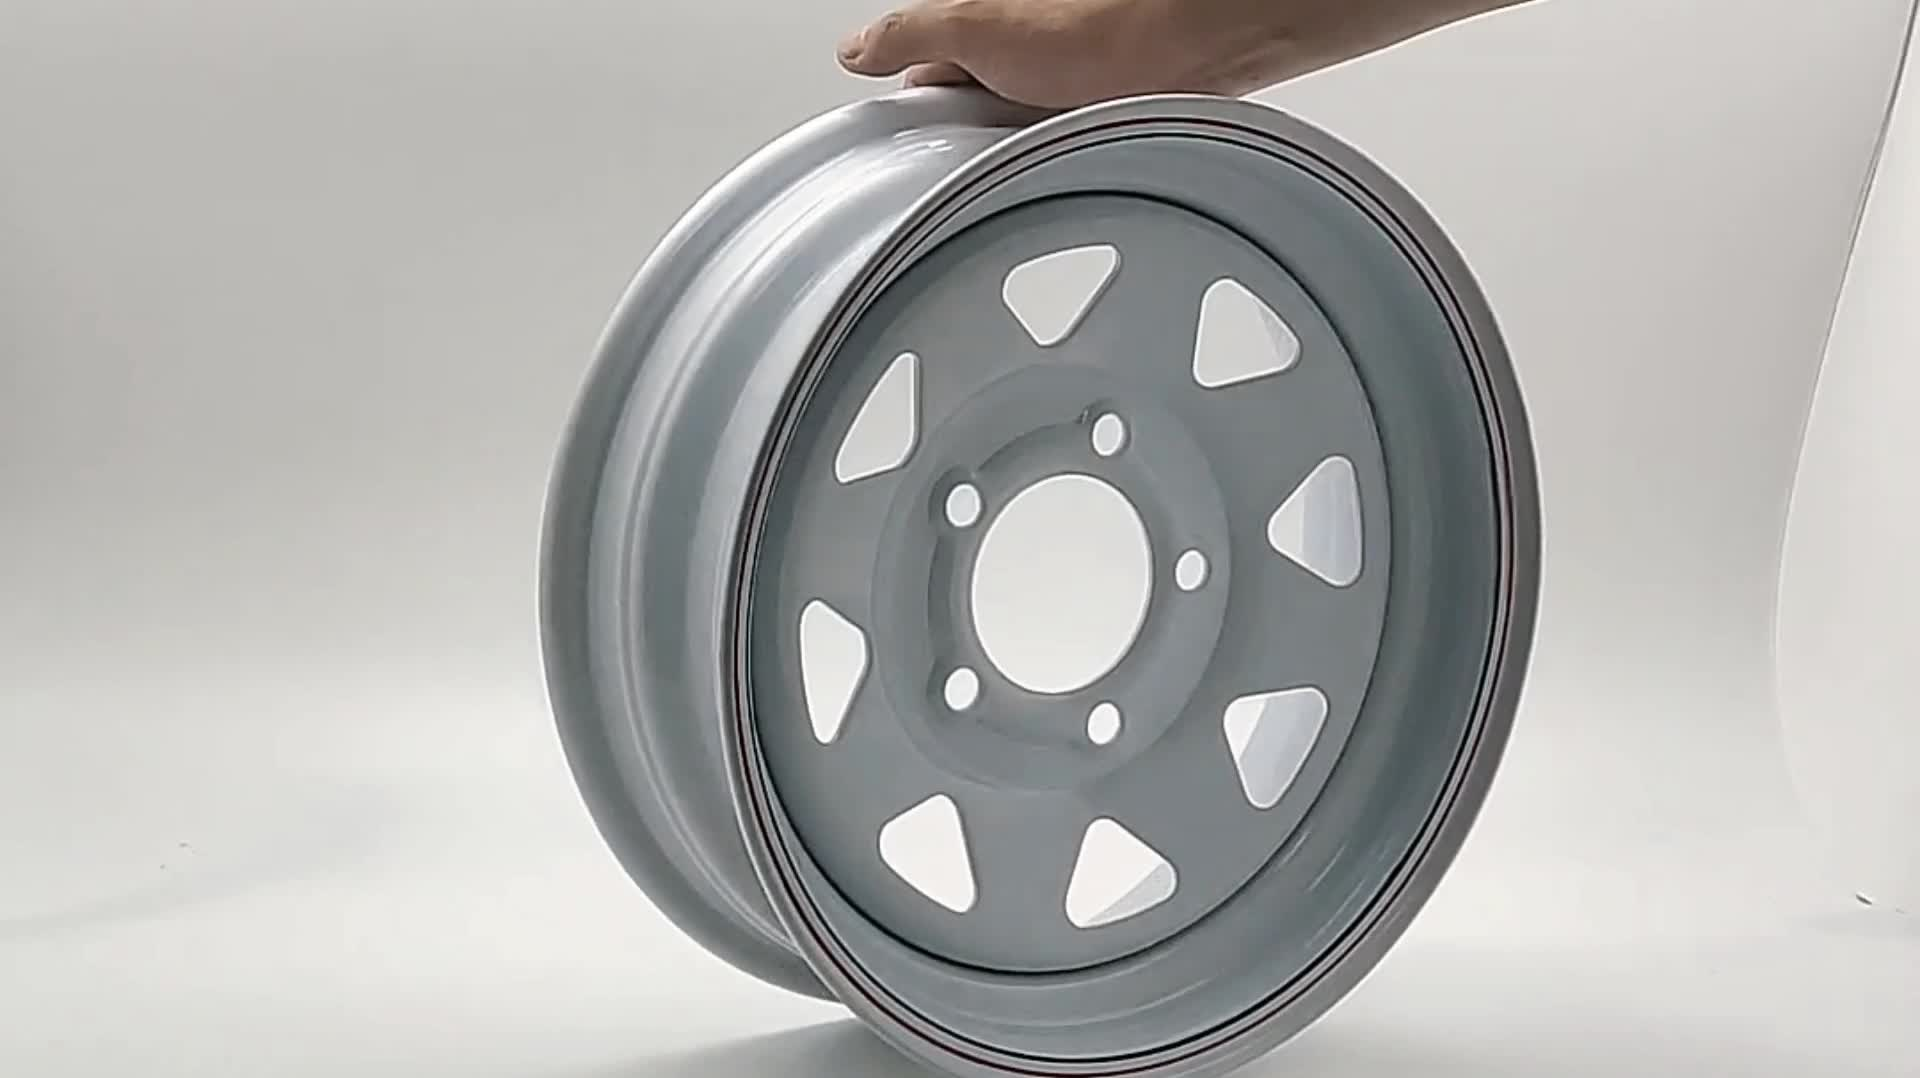 Wheelsky popular 16 inch 16x7J 6x1397 modular eight spoke steel 4x4 beadlock wheel rim for trailer